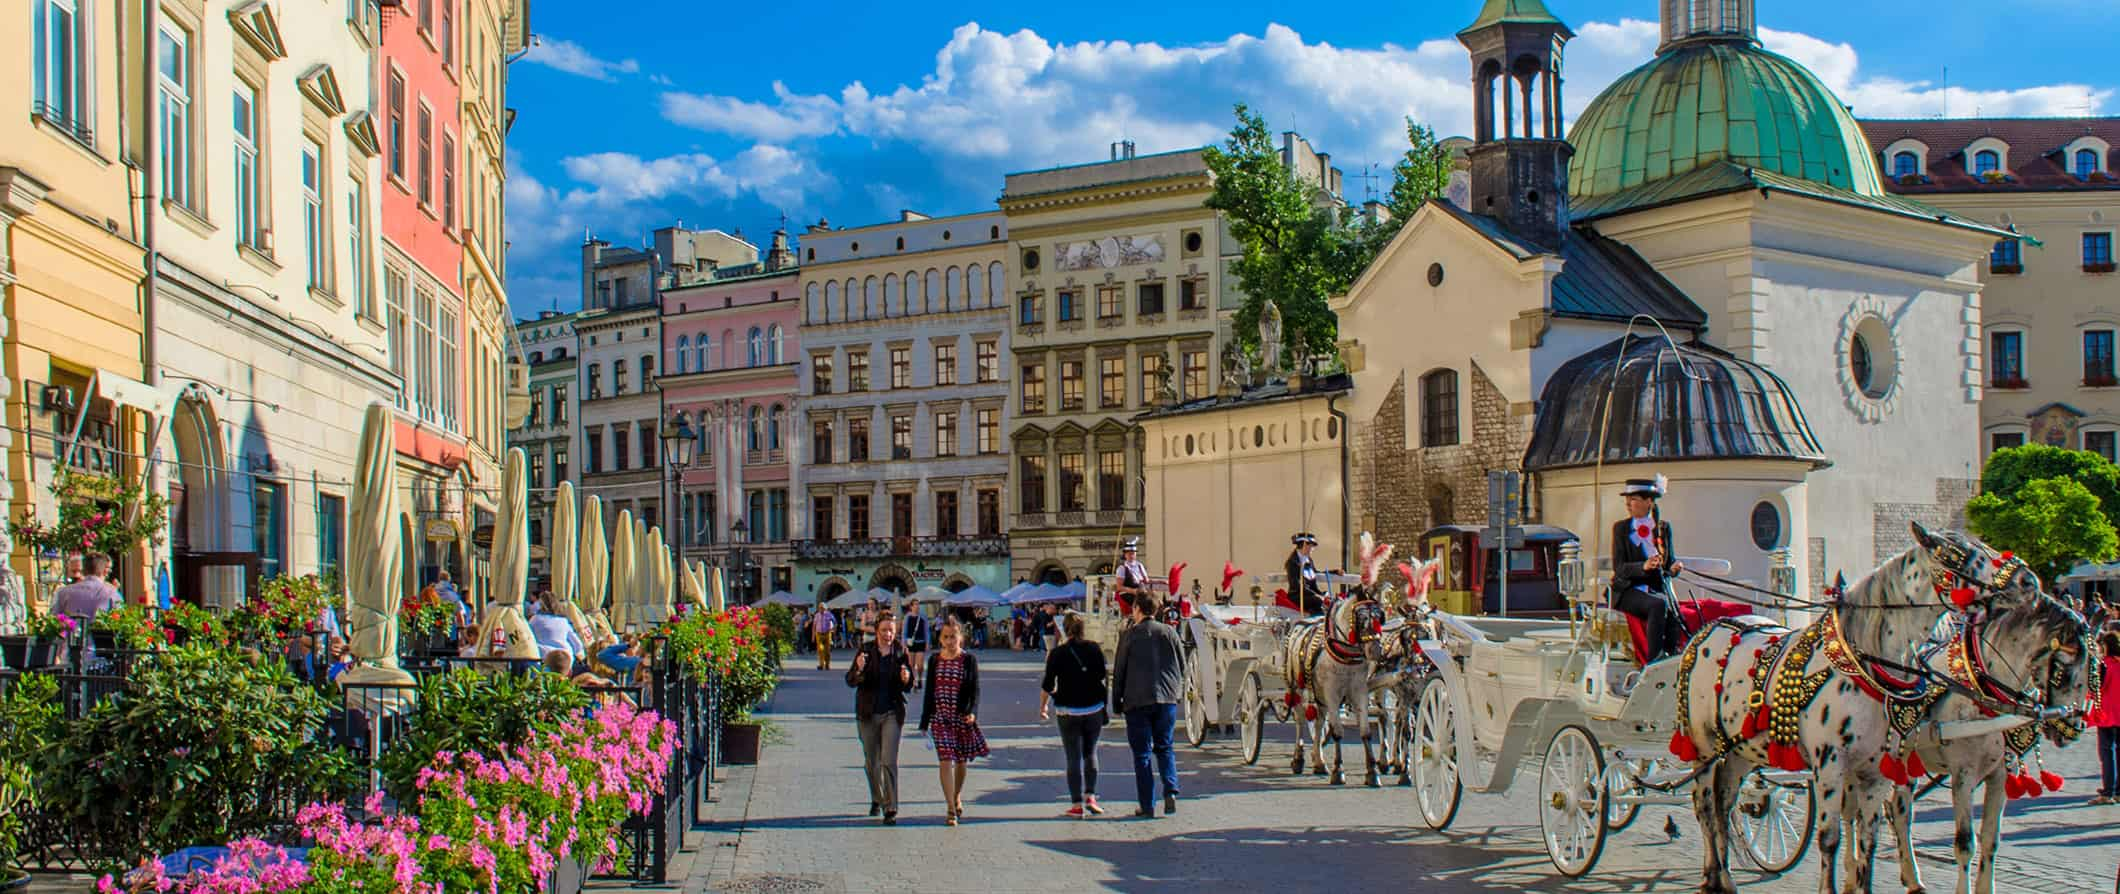 view of Krakow's historical city square